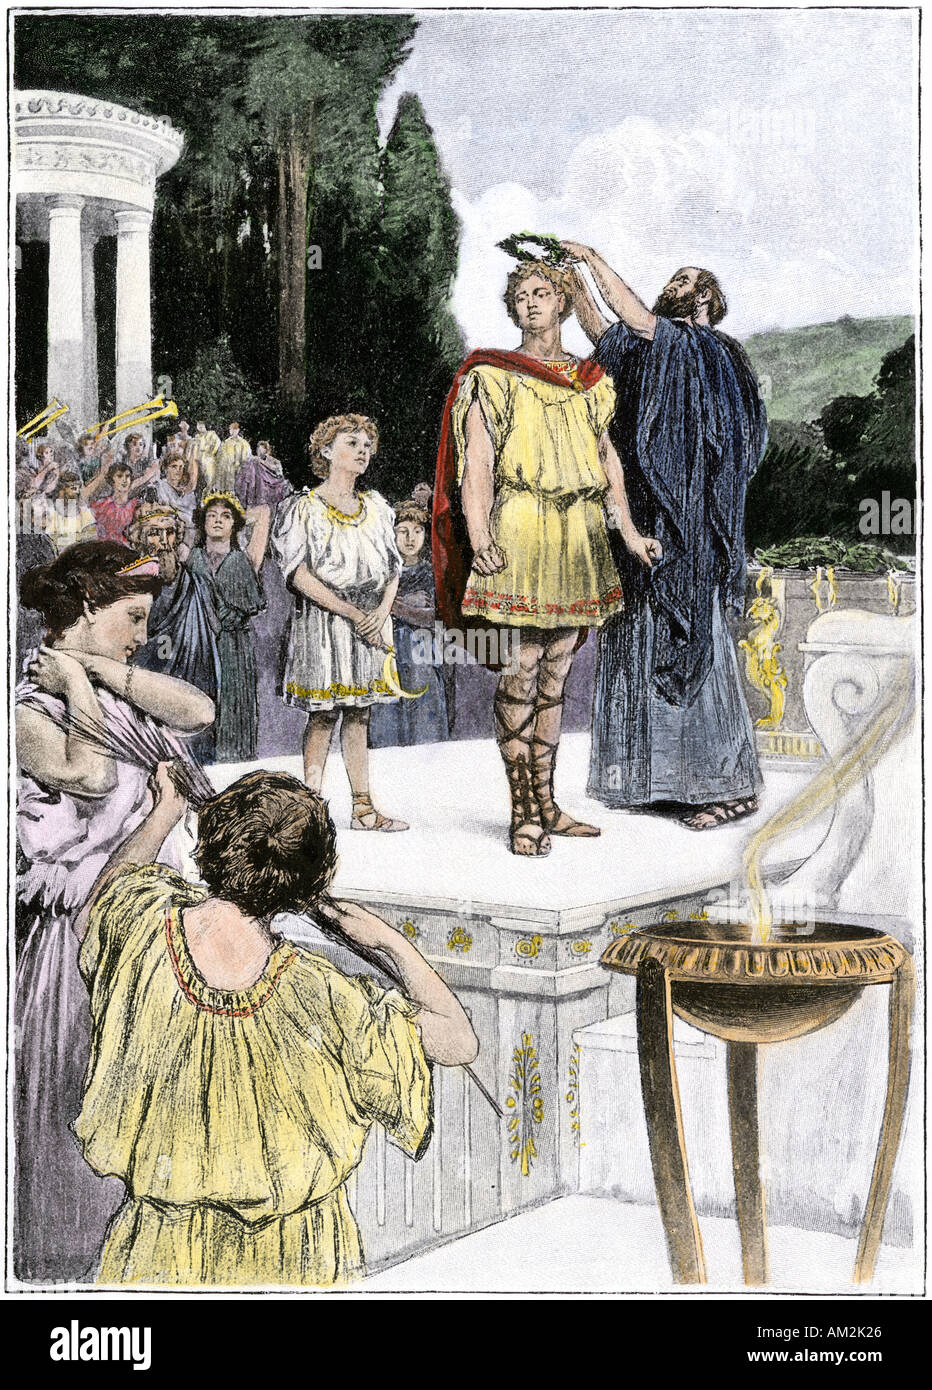 Crowning an Olympic winner with laurel ancient Greece. Hand-colored halftone of an illustration - Stock Image